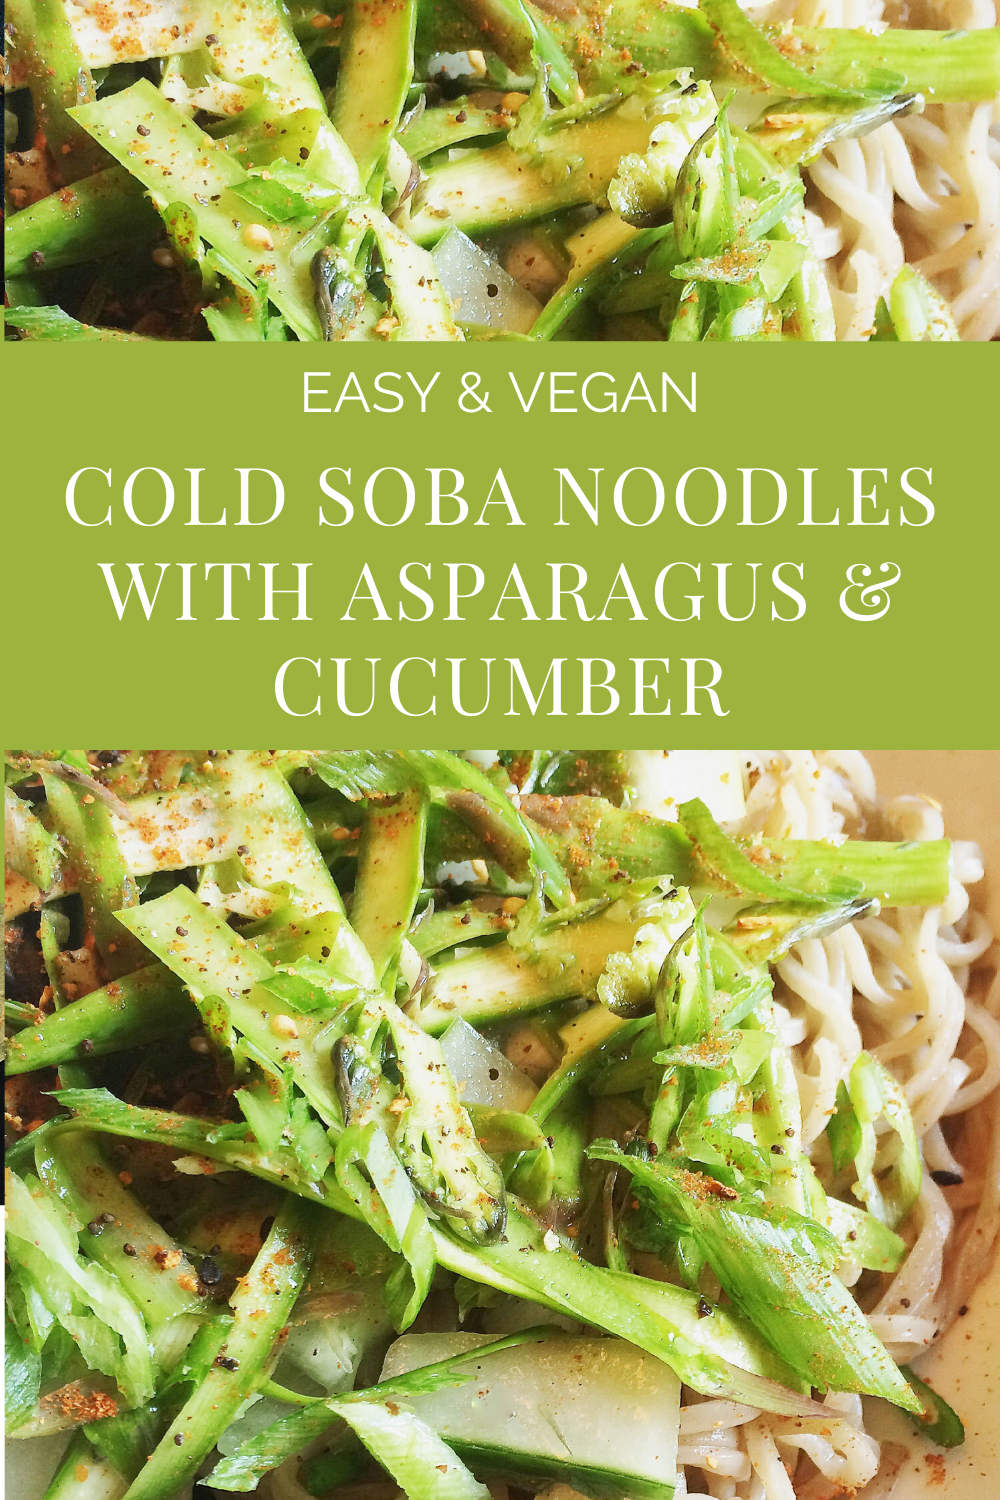 Cold Soba Noodle Salad with Asparagus and Cucumber - A light and refreshing vegan meal ready to serve in thirty minutes or less! 